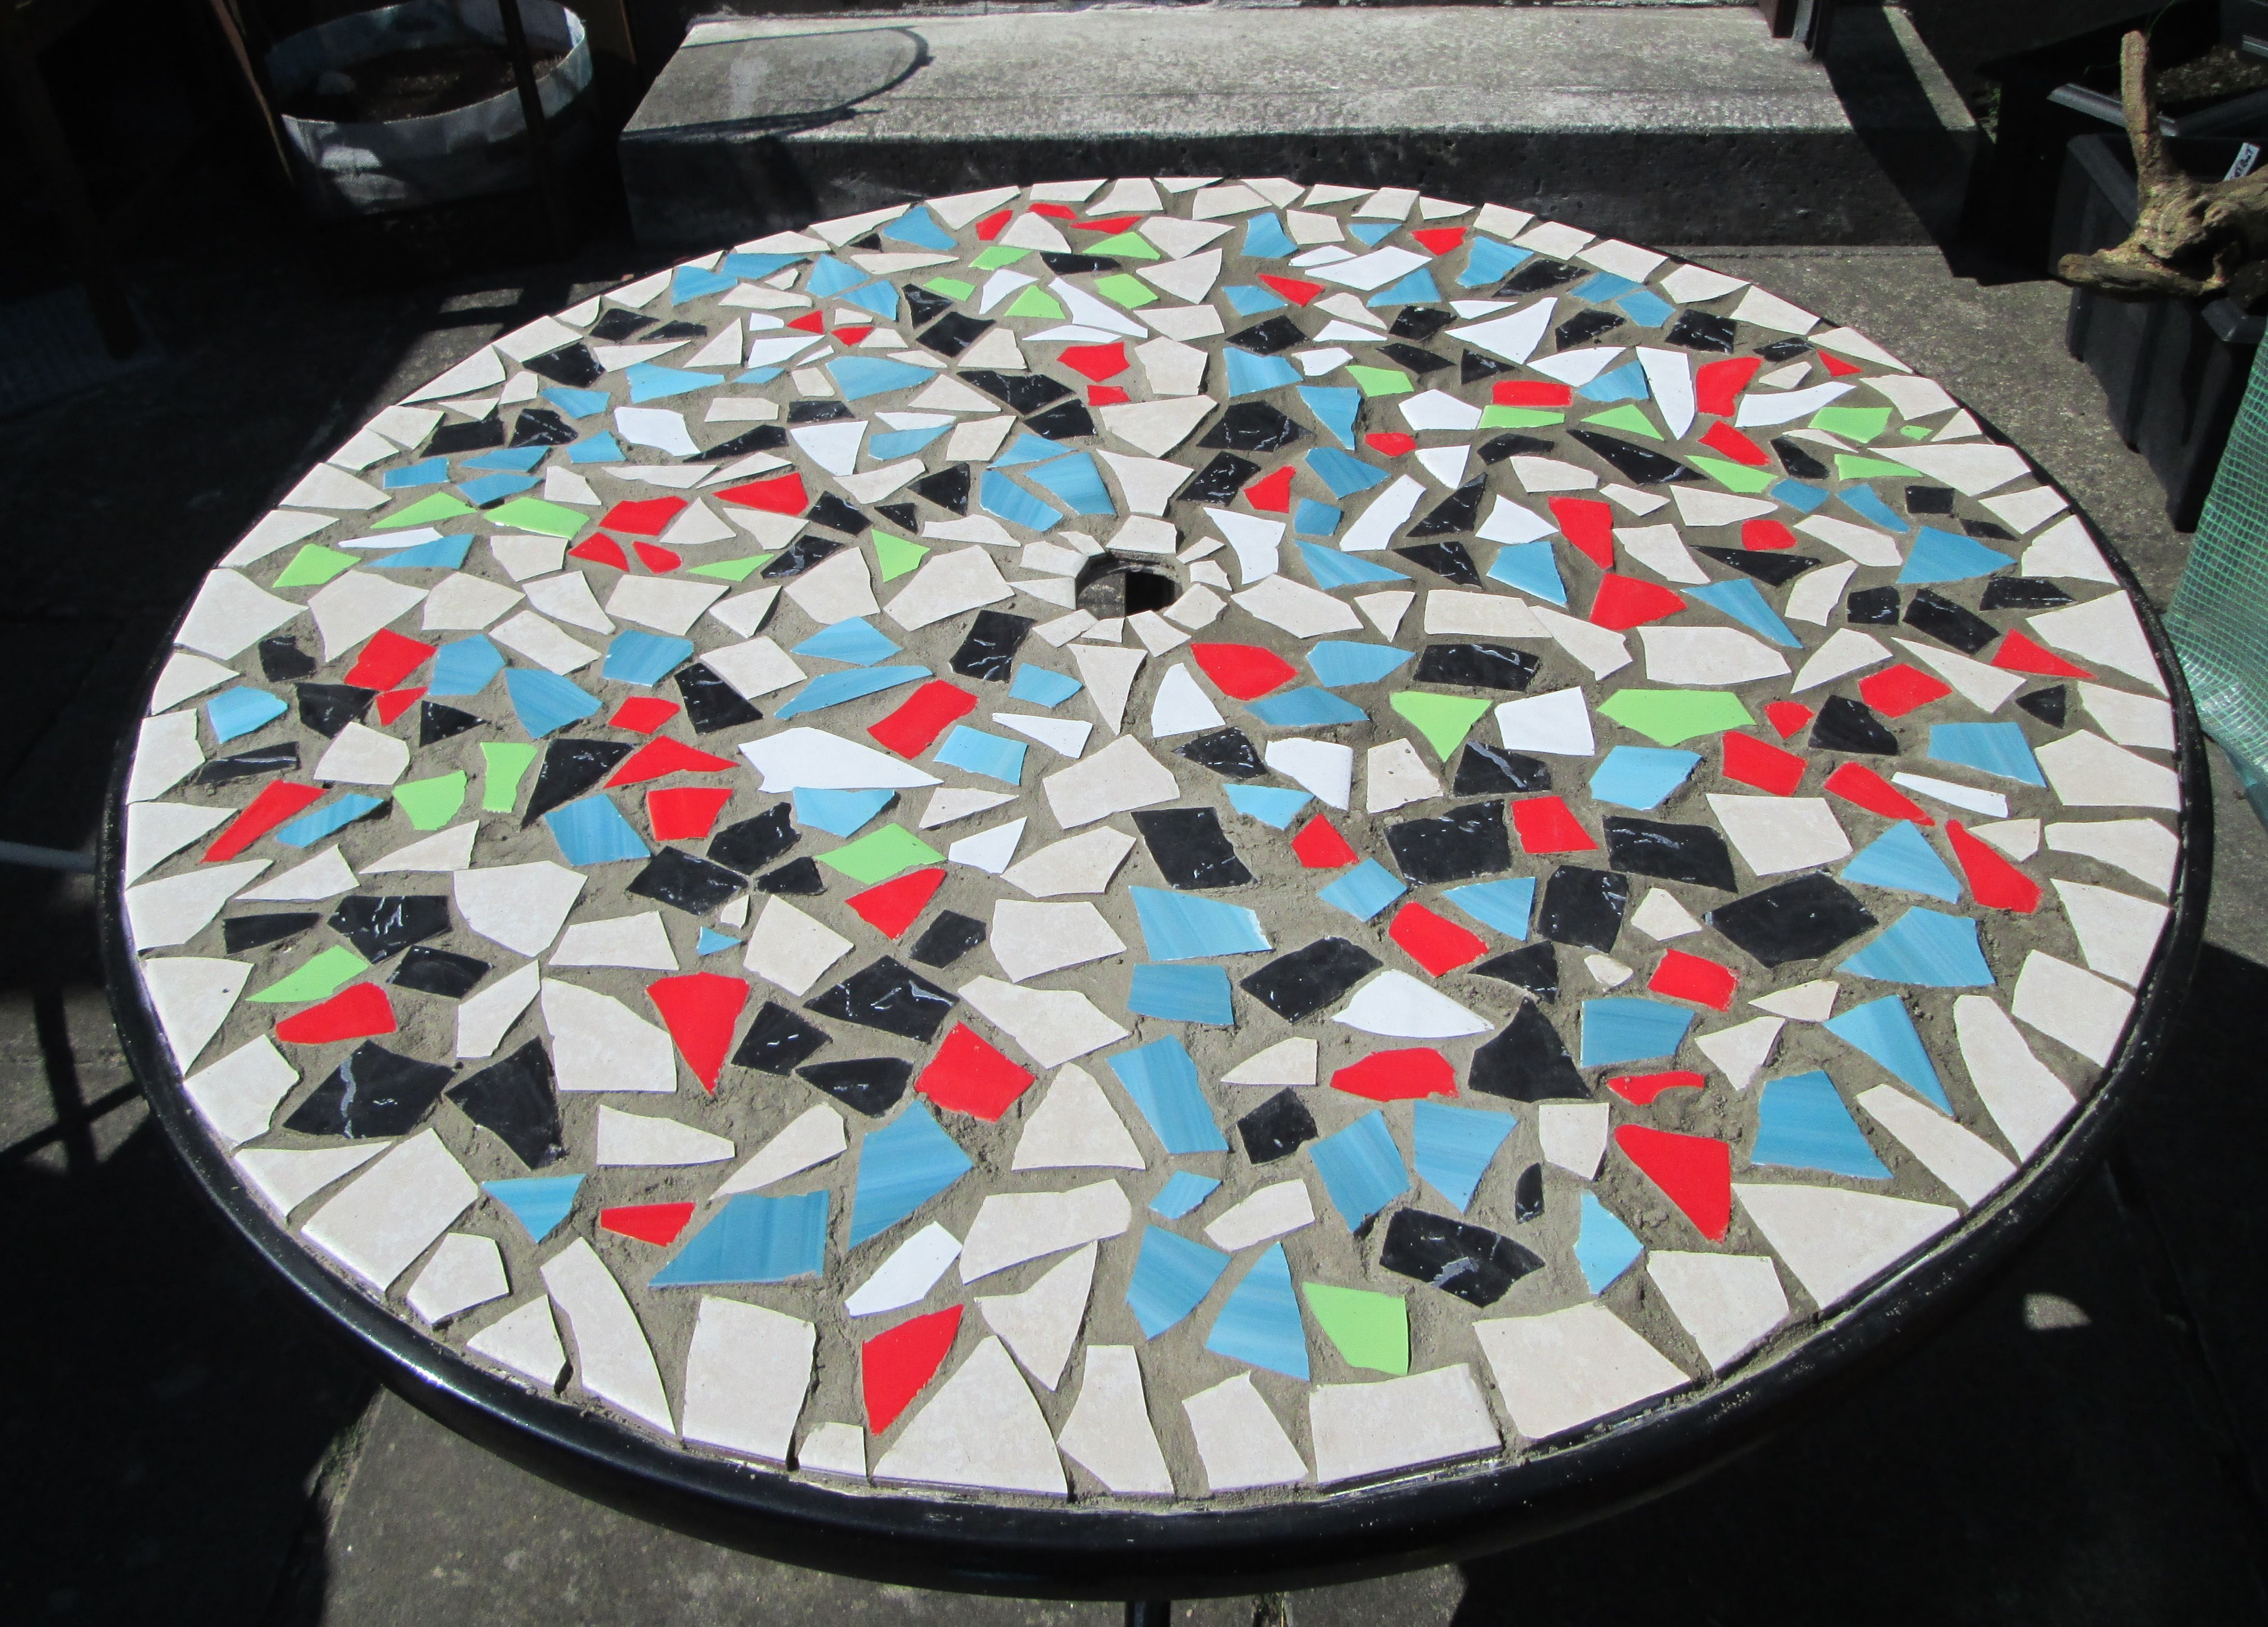 superior How To Make A Mosaic Table Part - 12: How To Design Mosaic Table Top with Ceramic Tiles